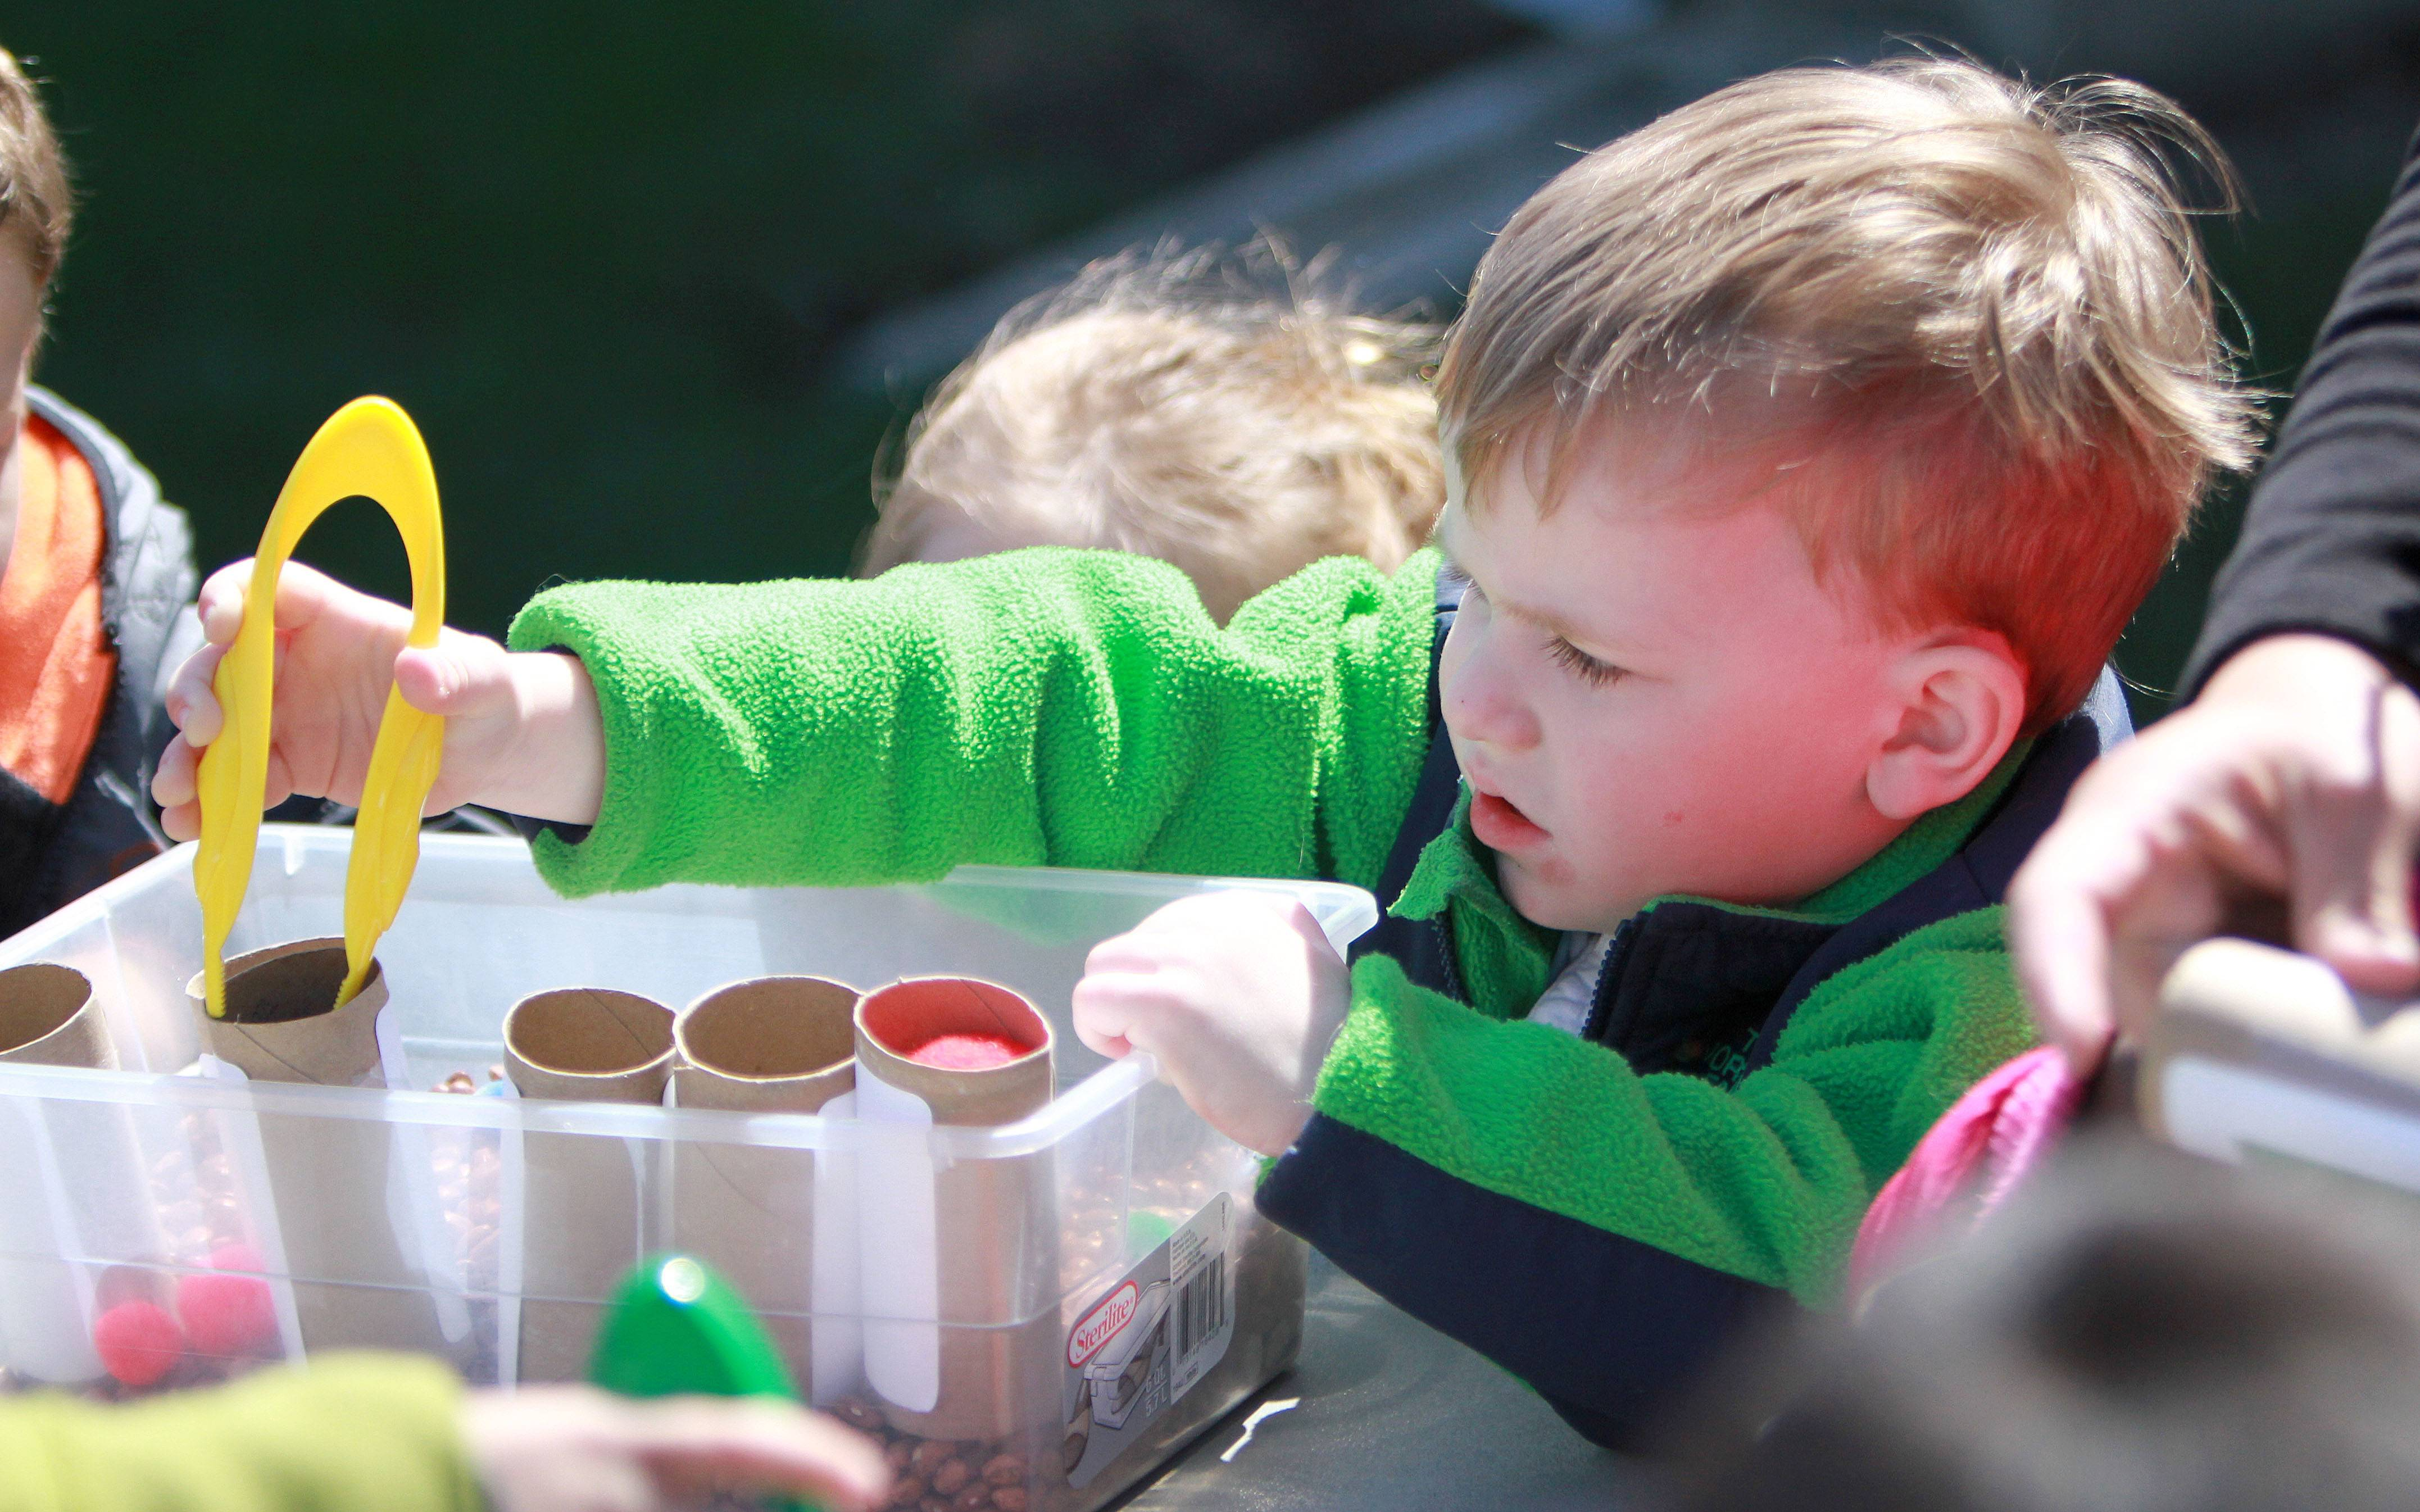 Logan Dietz, 3, participates in a color sorting activity as Woodland Primary students celebrate Earth Day on Tuesday in Gages Lake.